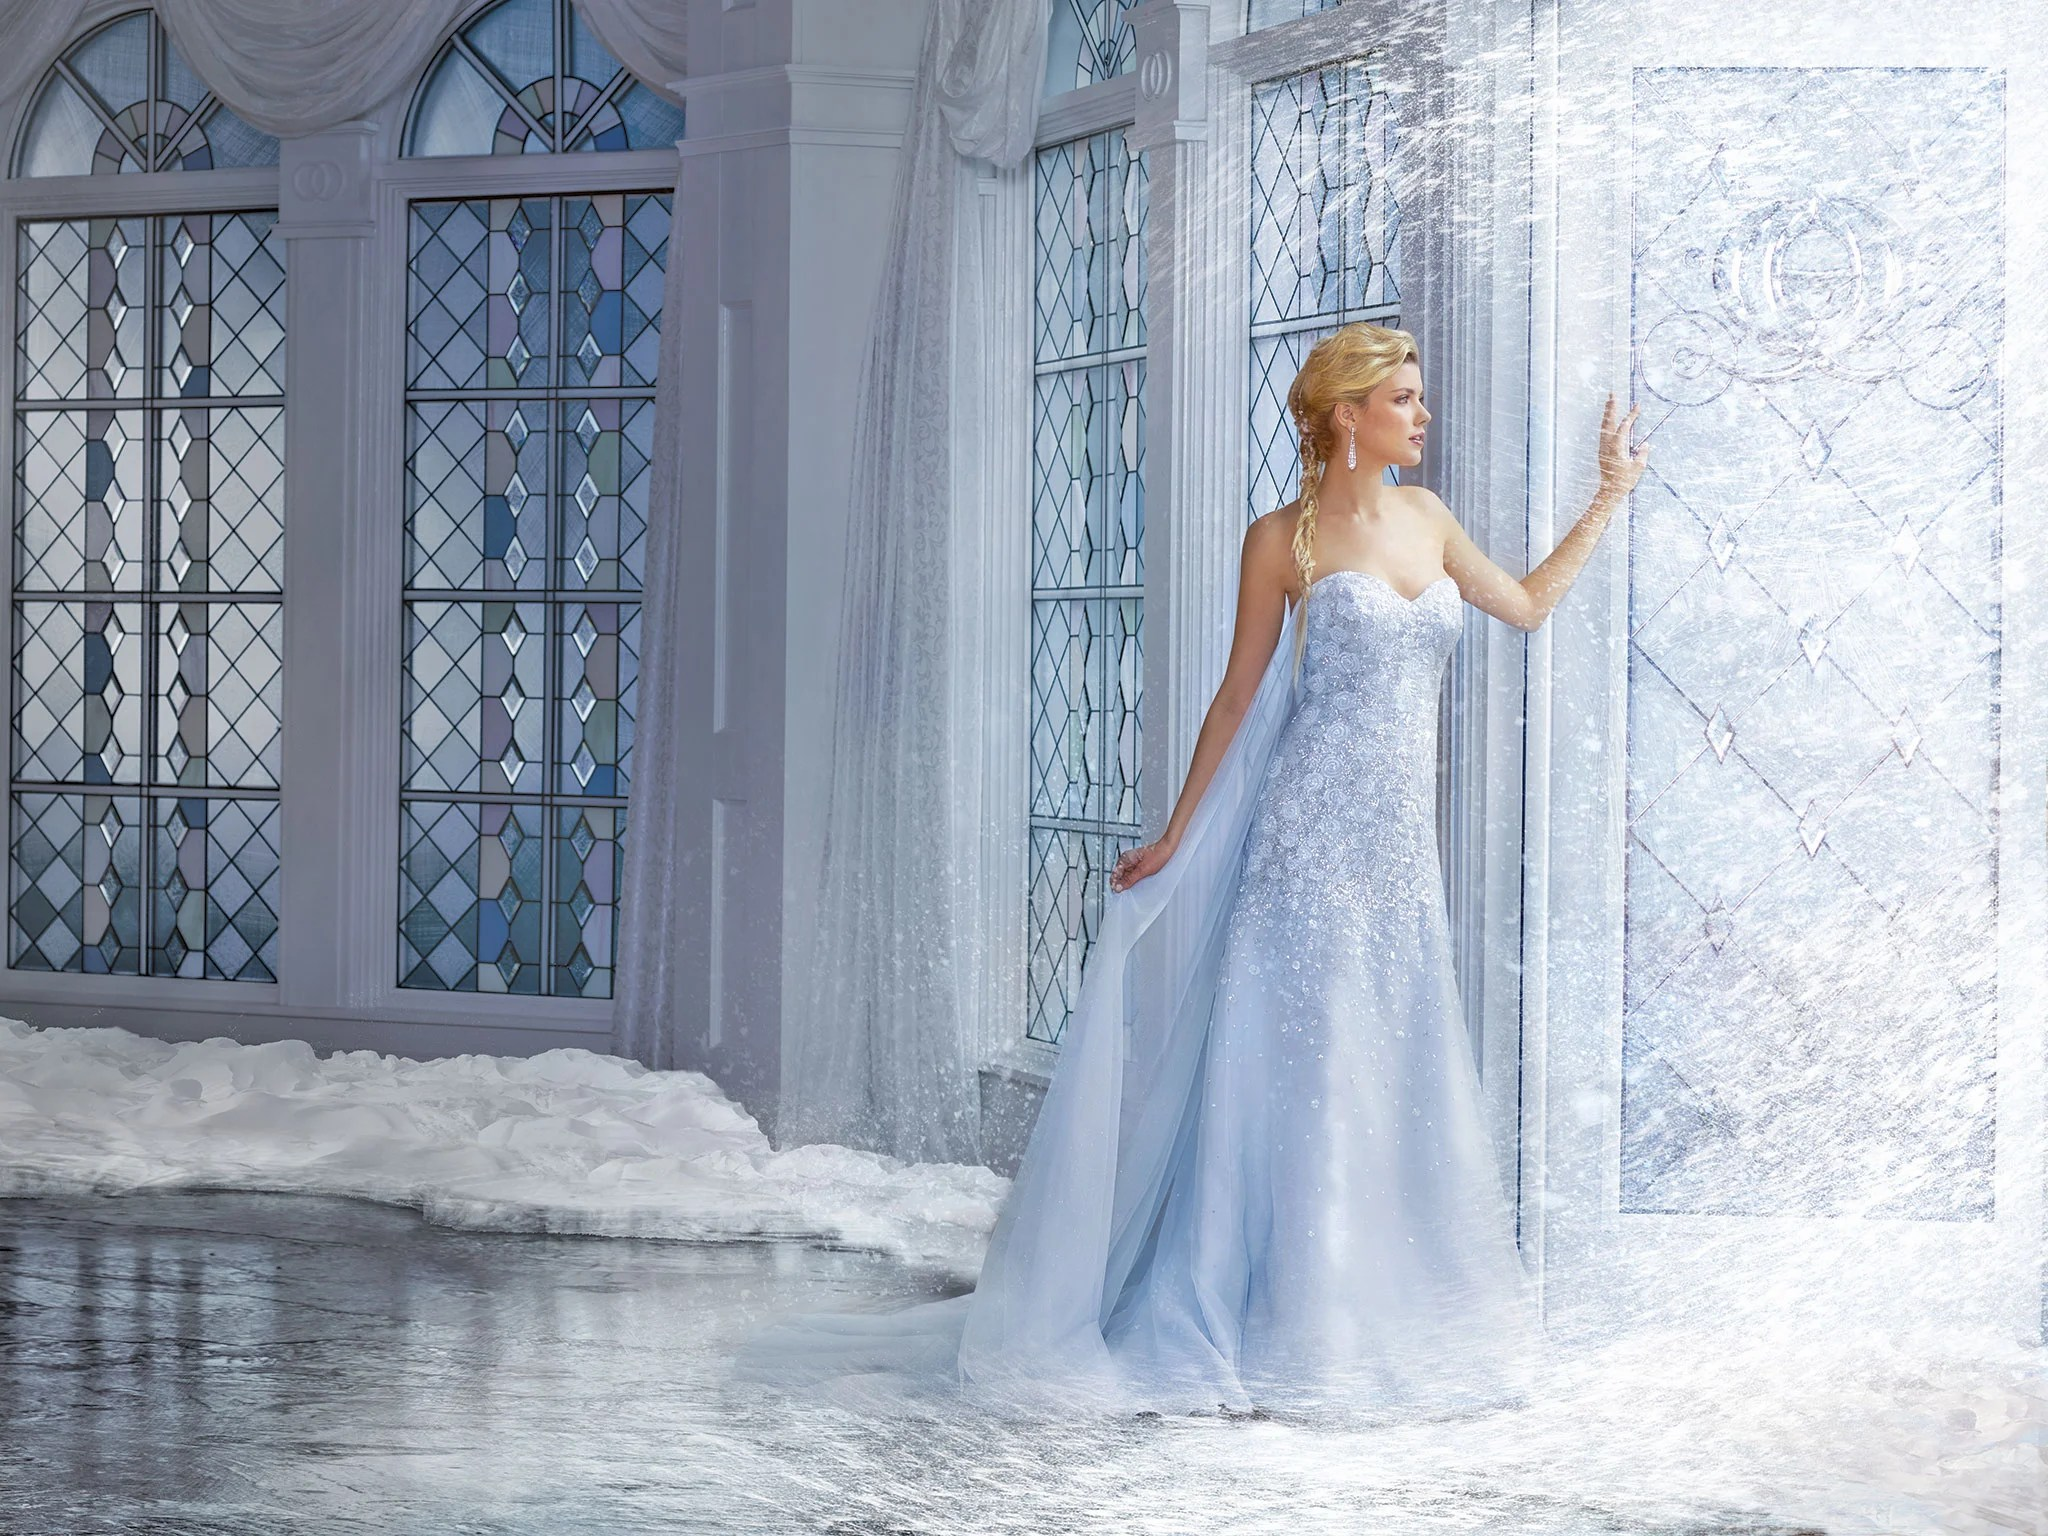 disney inspired wedding dresses from elsa to cinderella you can channel your favourite princess on cinderella inspired wedding dress Disney inspired wedding dresses would you channel your favourite Disney princess on your wedding day The Independent